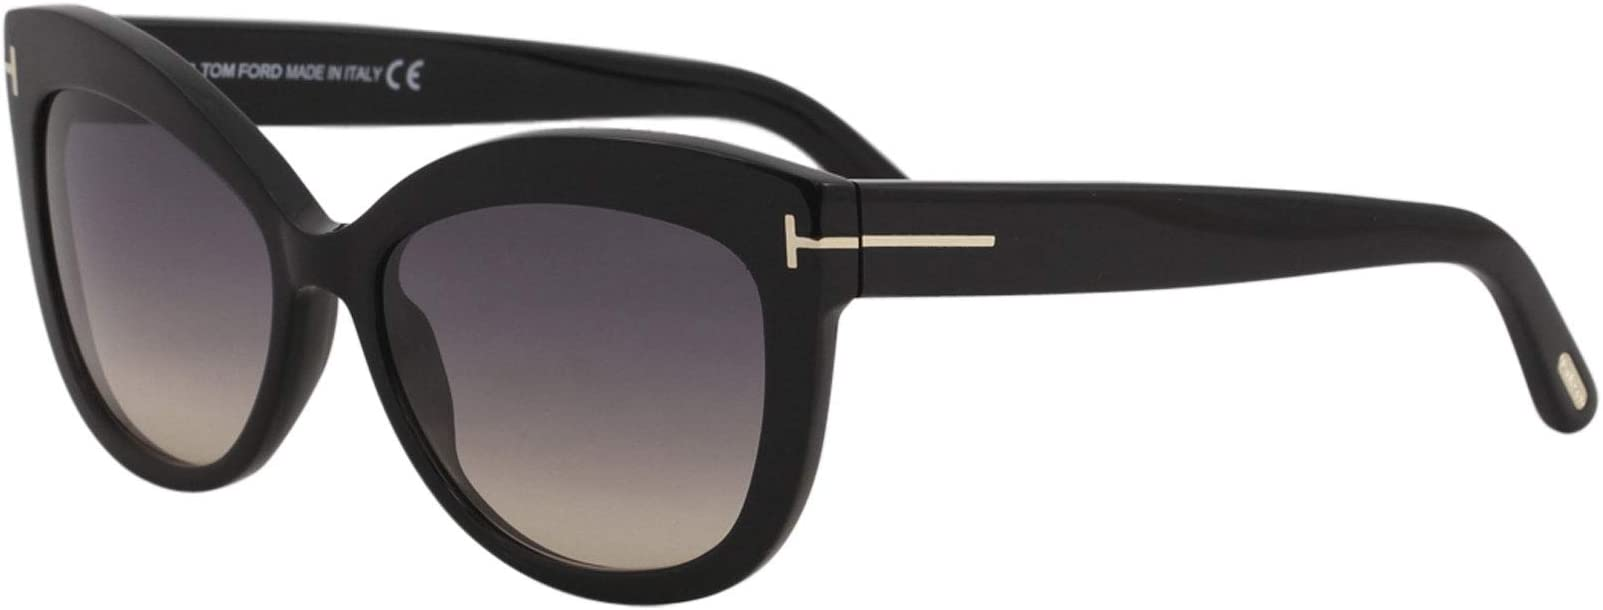 Tom Ford Women's Alistair FT0524 01B Wayfarer Sunglasses, Black, 56 mm